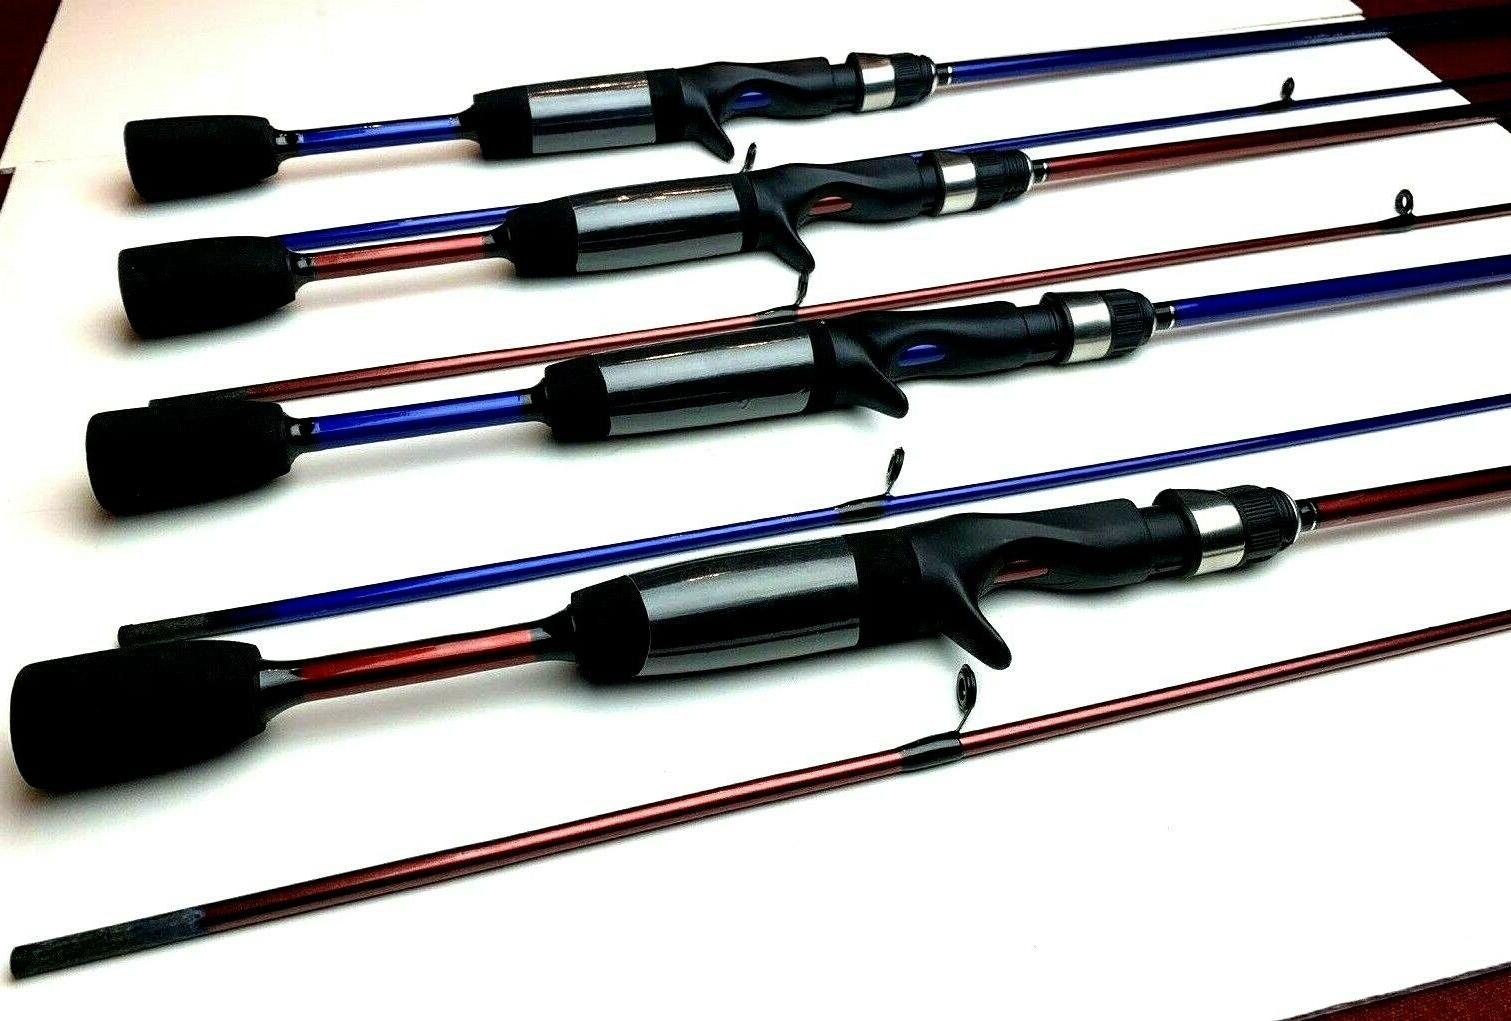 Zebco Rods 5' Casting 2 2-RED 2-BLUE